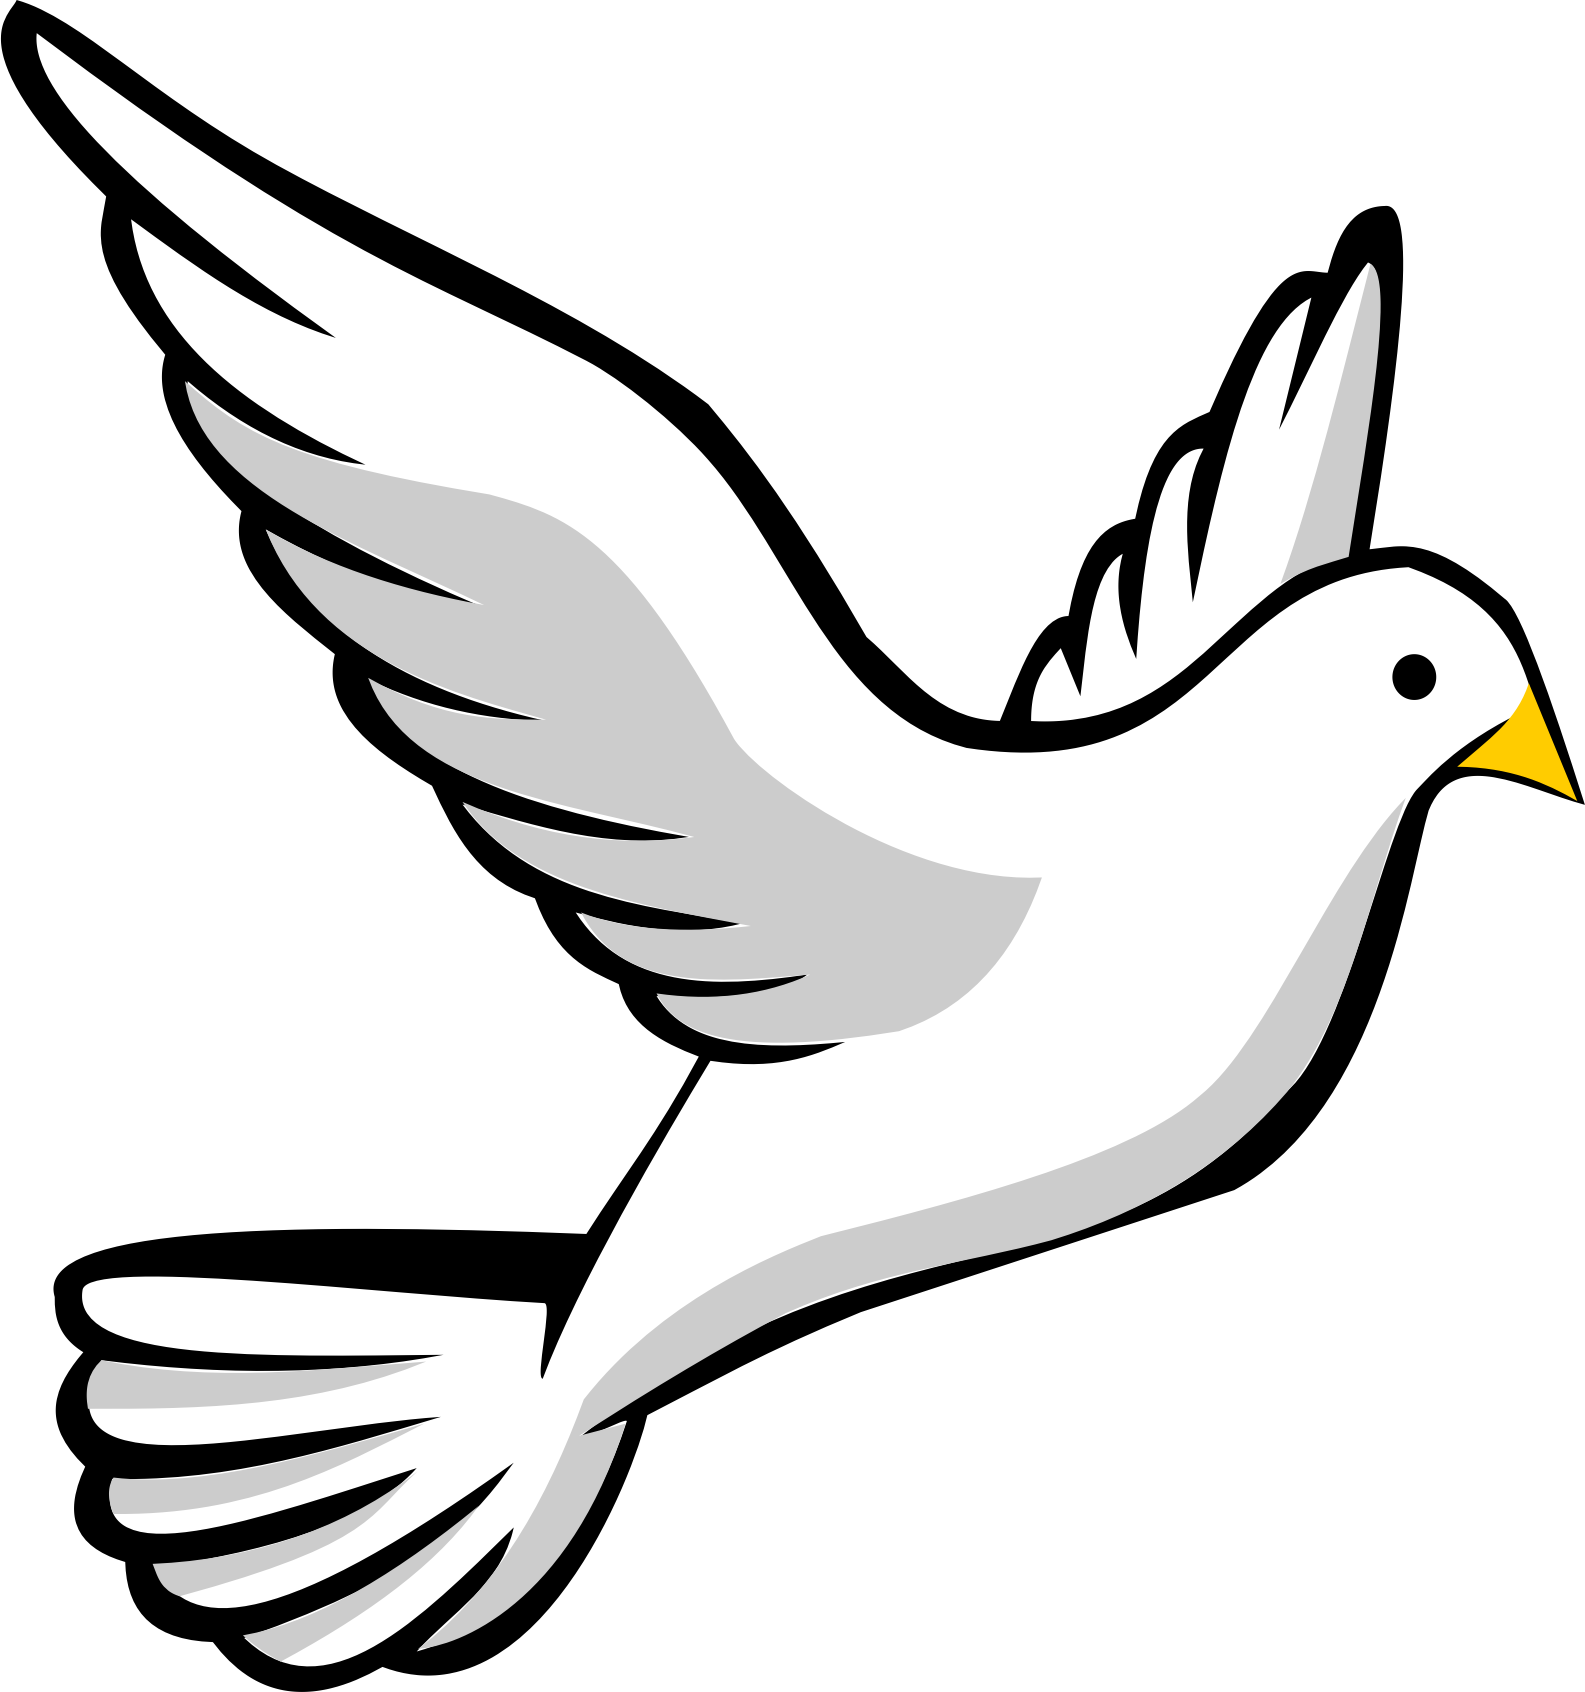 banner royalty free . Dove clipart